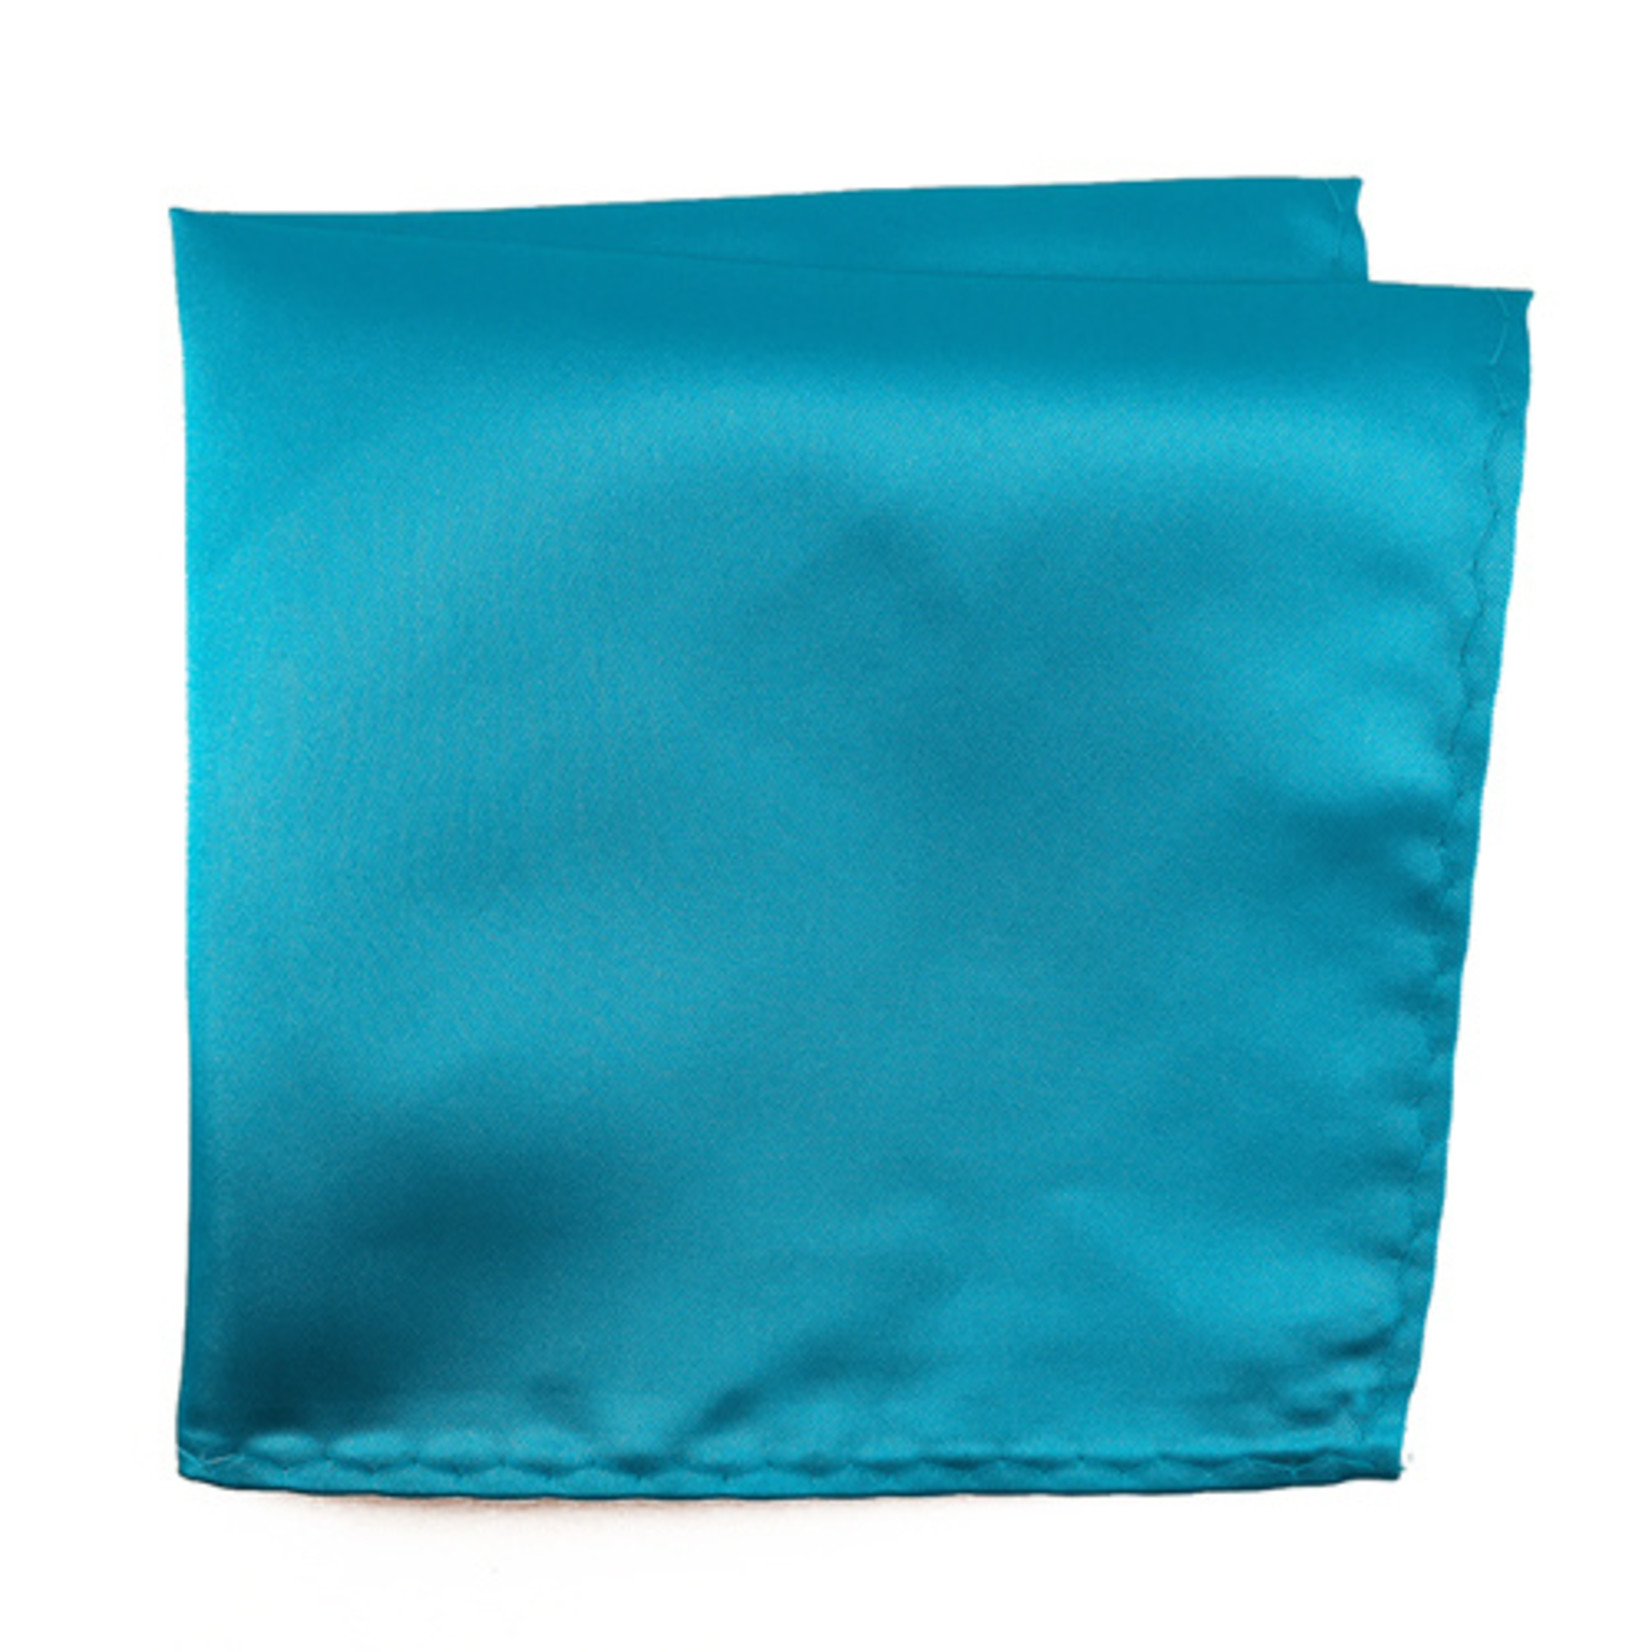 Knotz M100PSQ-20 Solid Turquoise Pocket Square